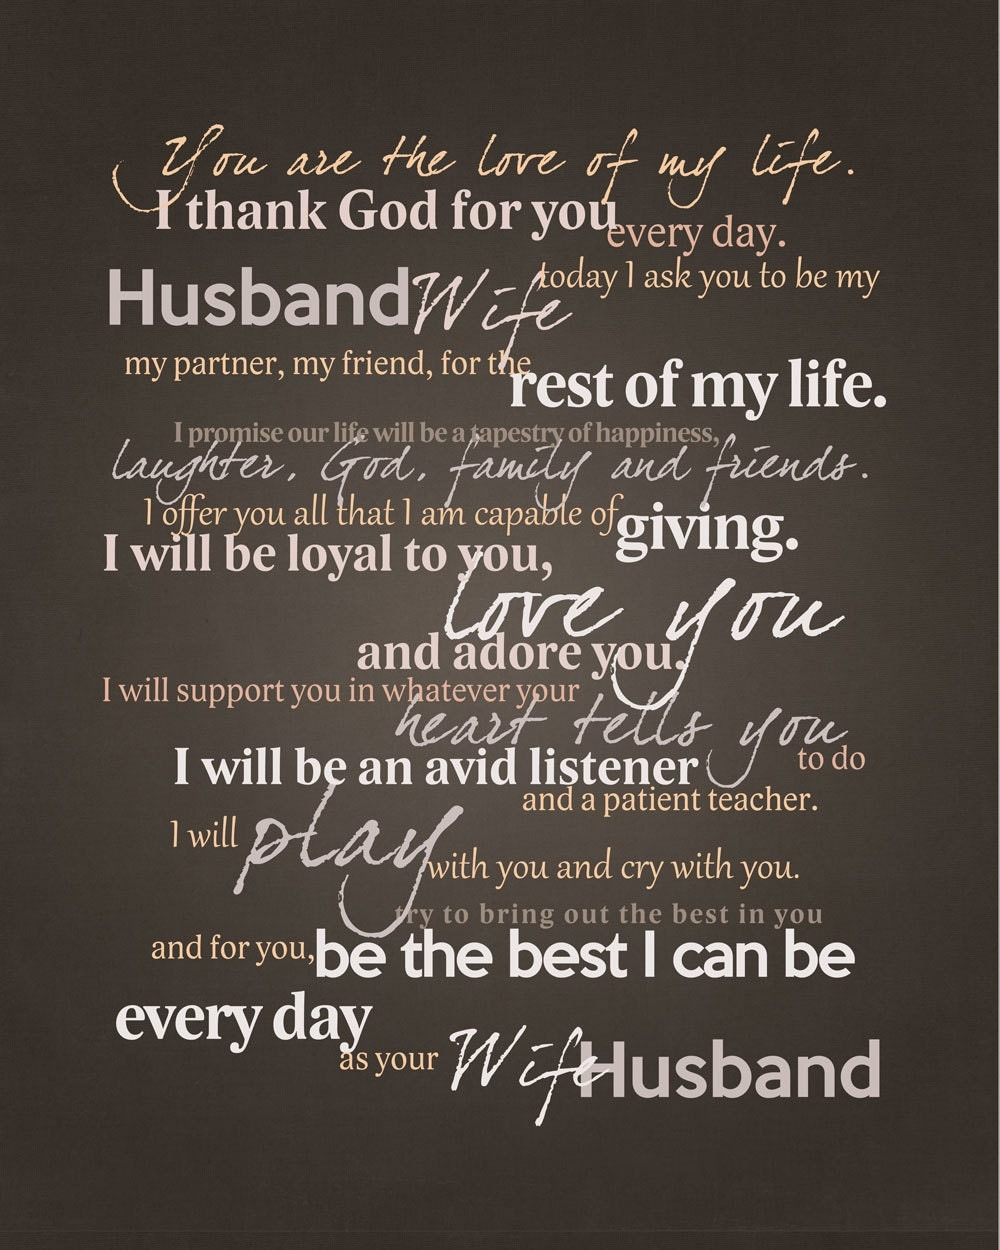 Best Wedding Vows: Frame Your Wedding Vows Adorable Graphic For Framing